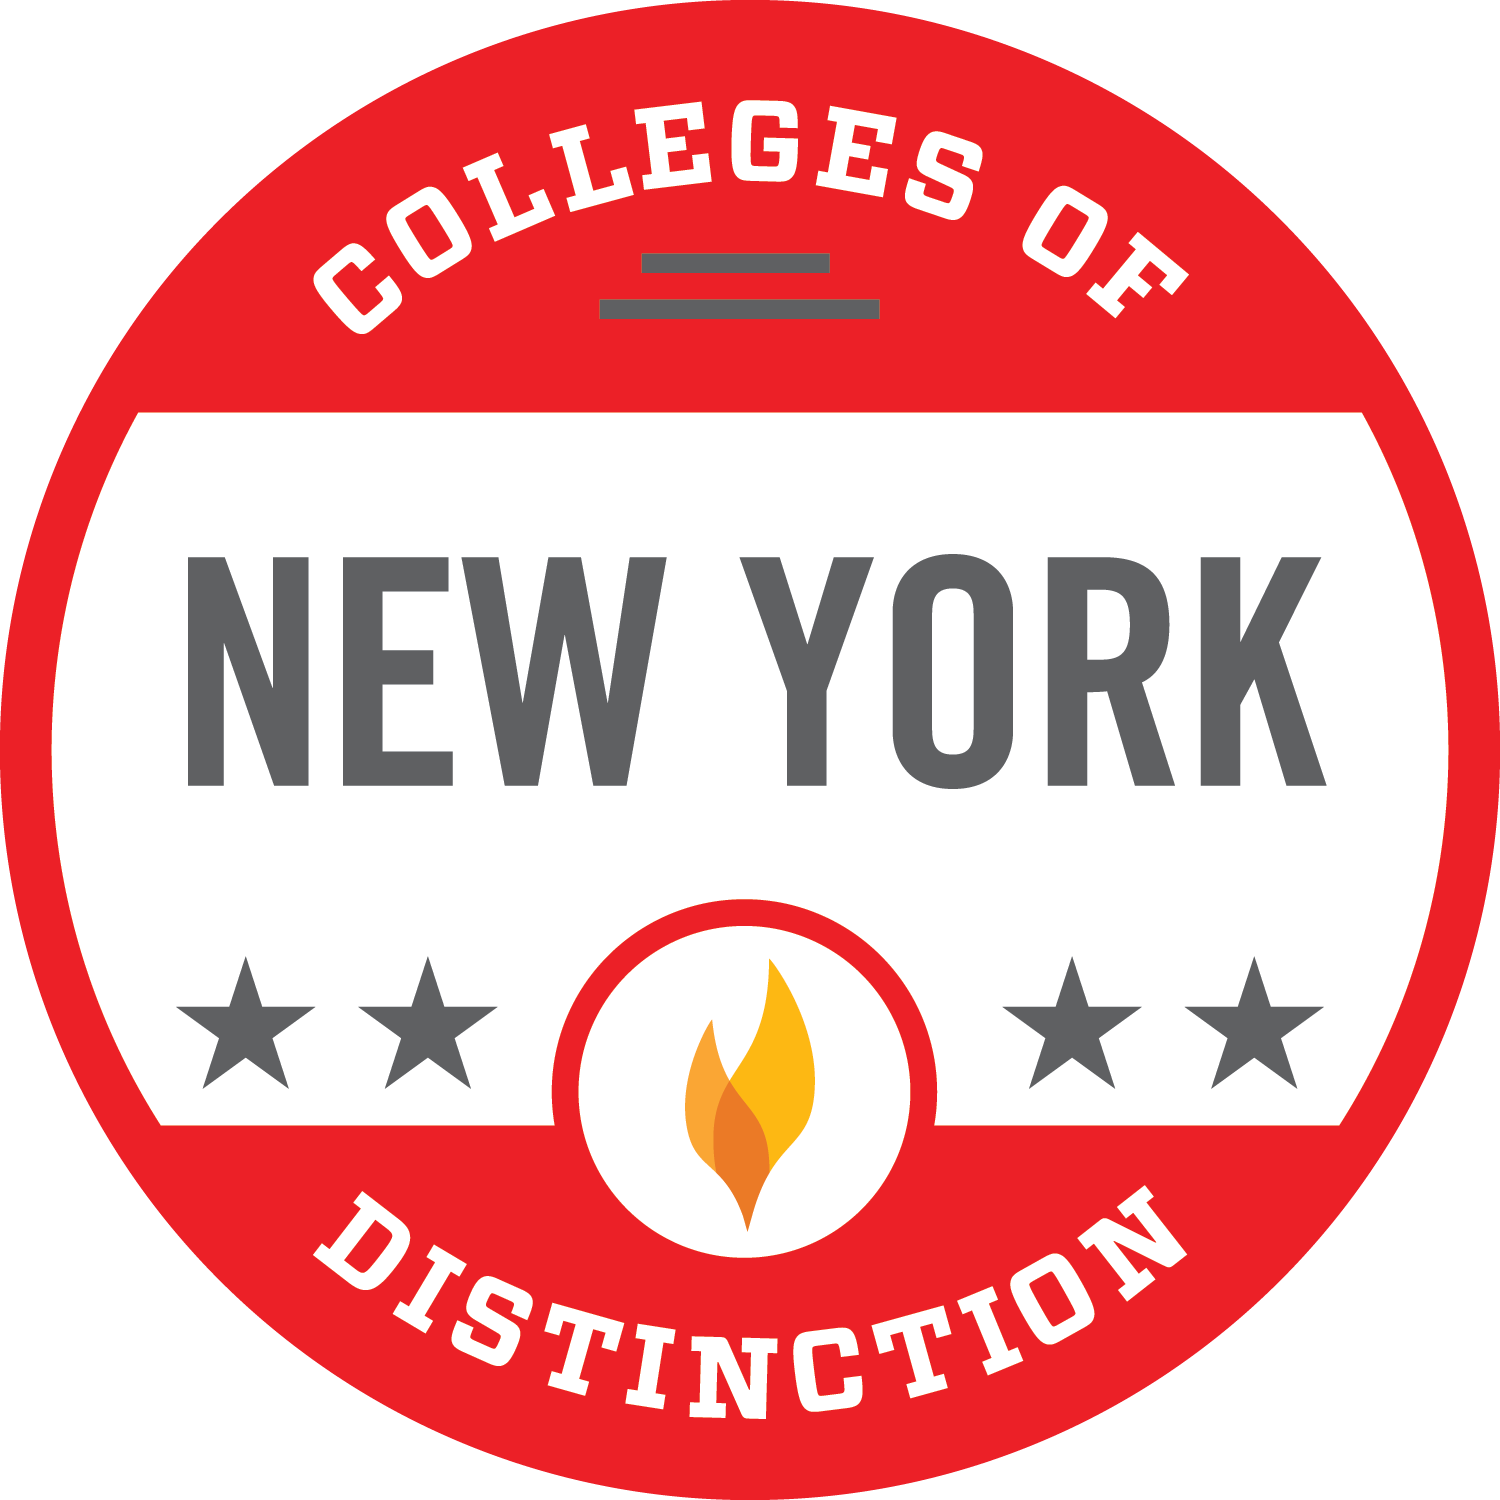 Colleges of Distinction: New York